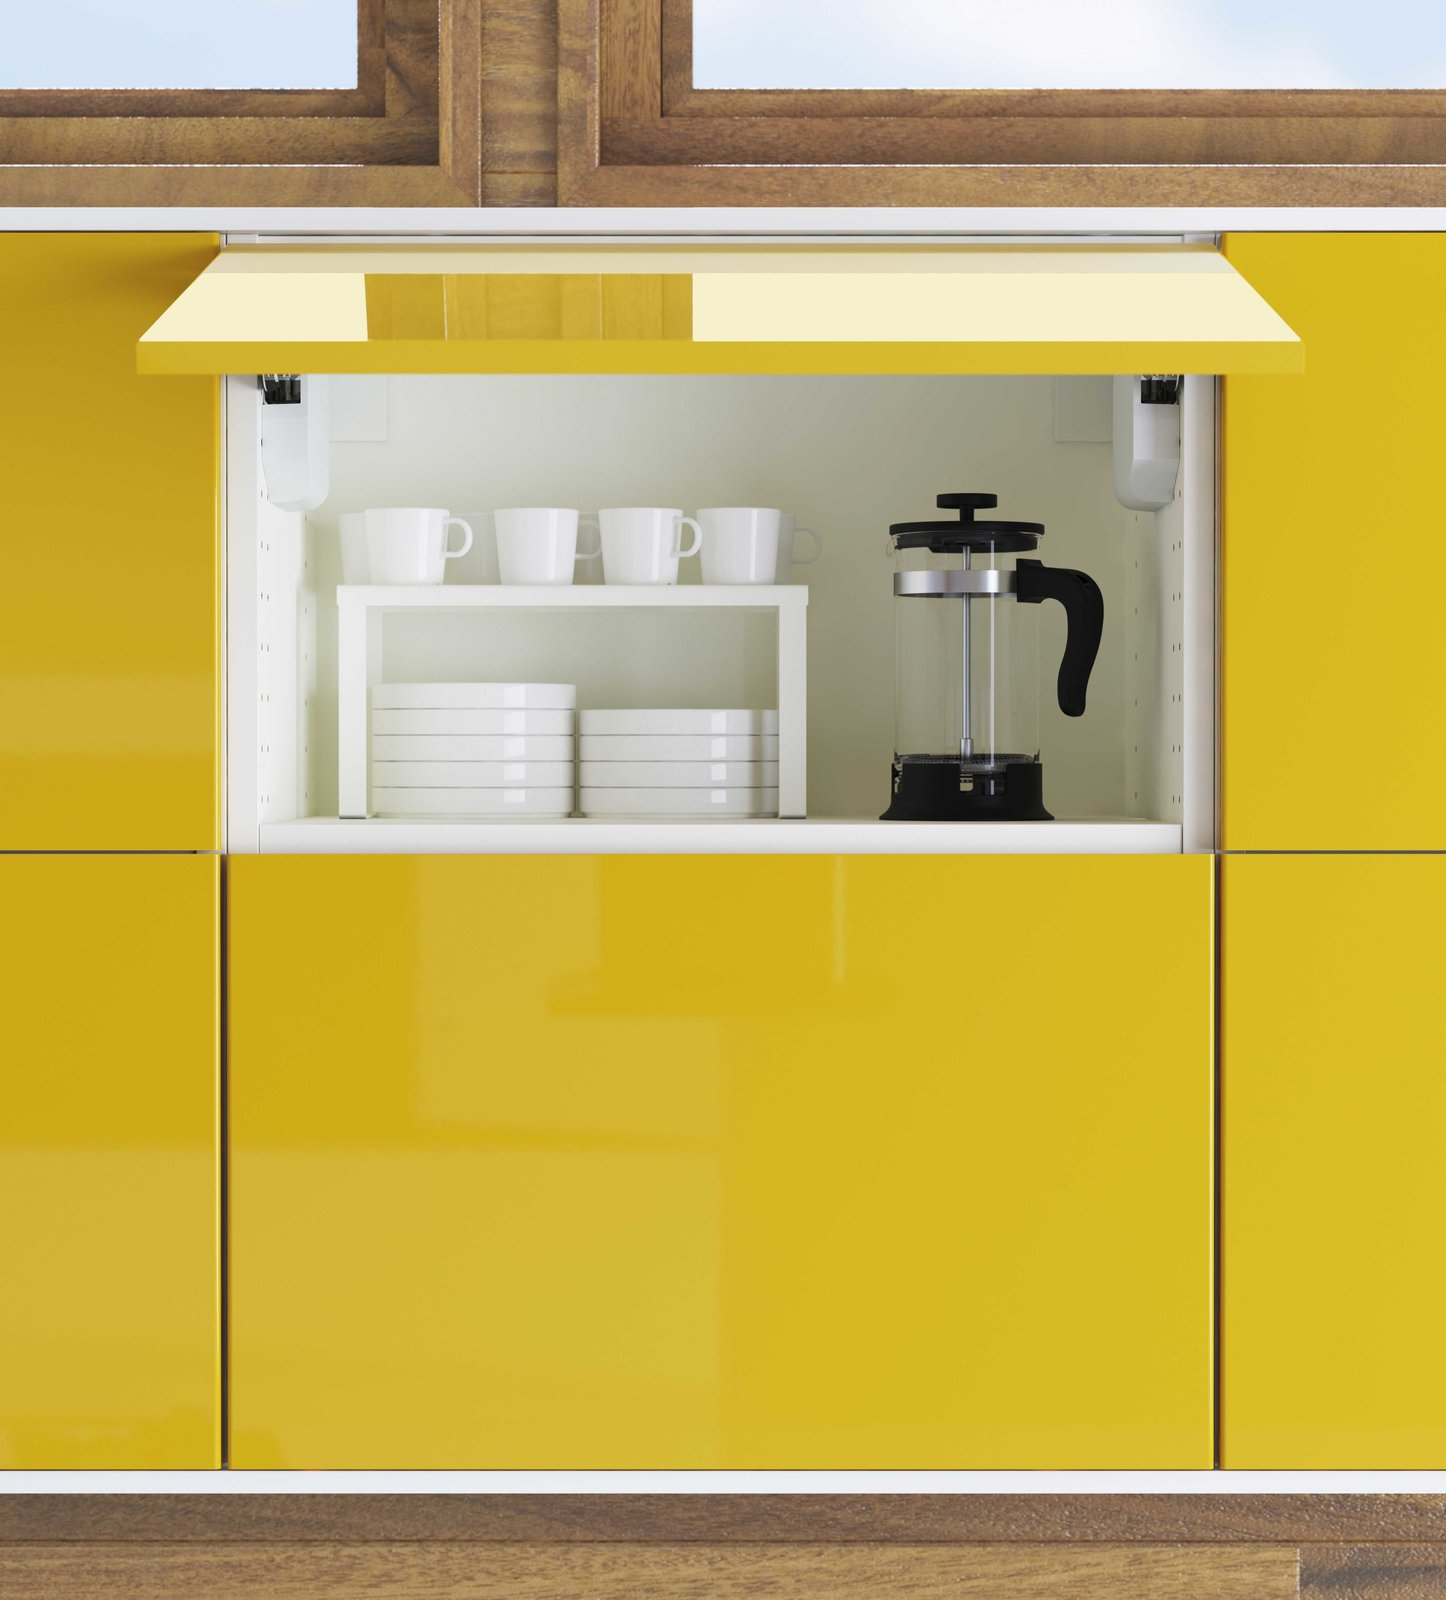 Kitchen and Colorful Cabinet Overhead cabinets now can be easily swung open for ease of access. The kitchens are priced at IKEA's usual retails. A 10 by 10 foot kitchen fitted with Sektion cabinets will range from around $1,300 to $2,200, excluding appliances.  Photo 3 of 7 in You Can Now Build Your Entire Kitchen with Ikea (Appliances Too!)